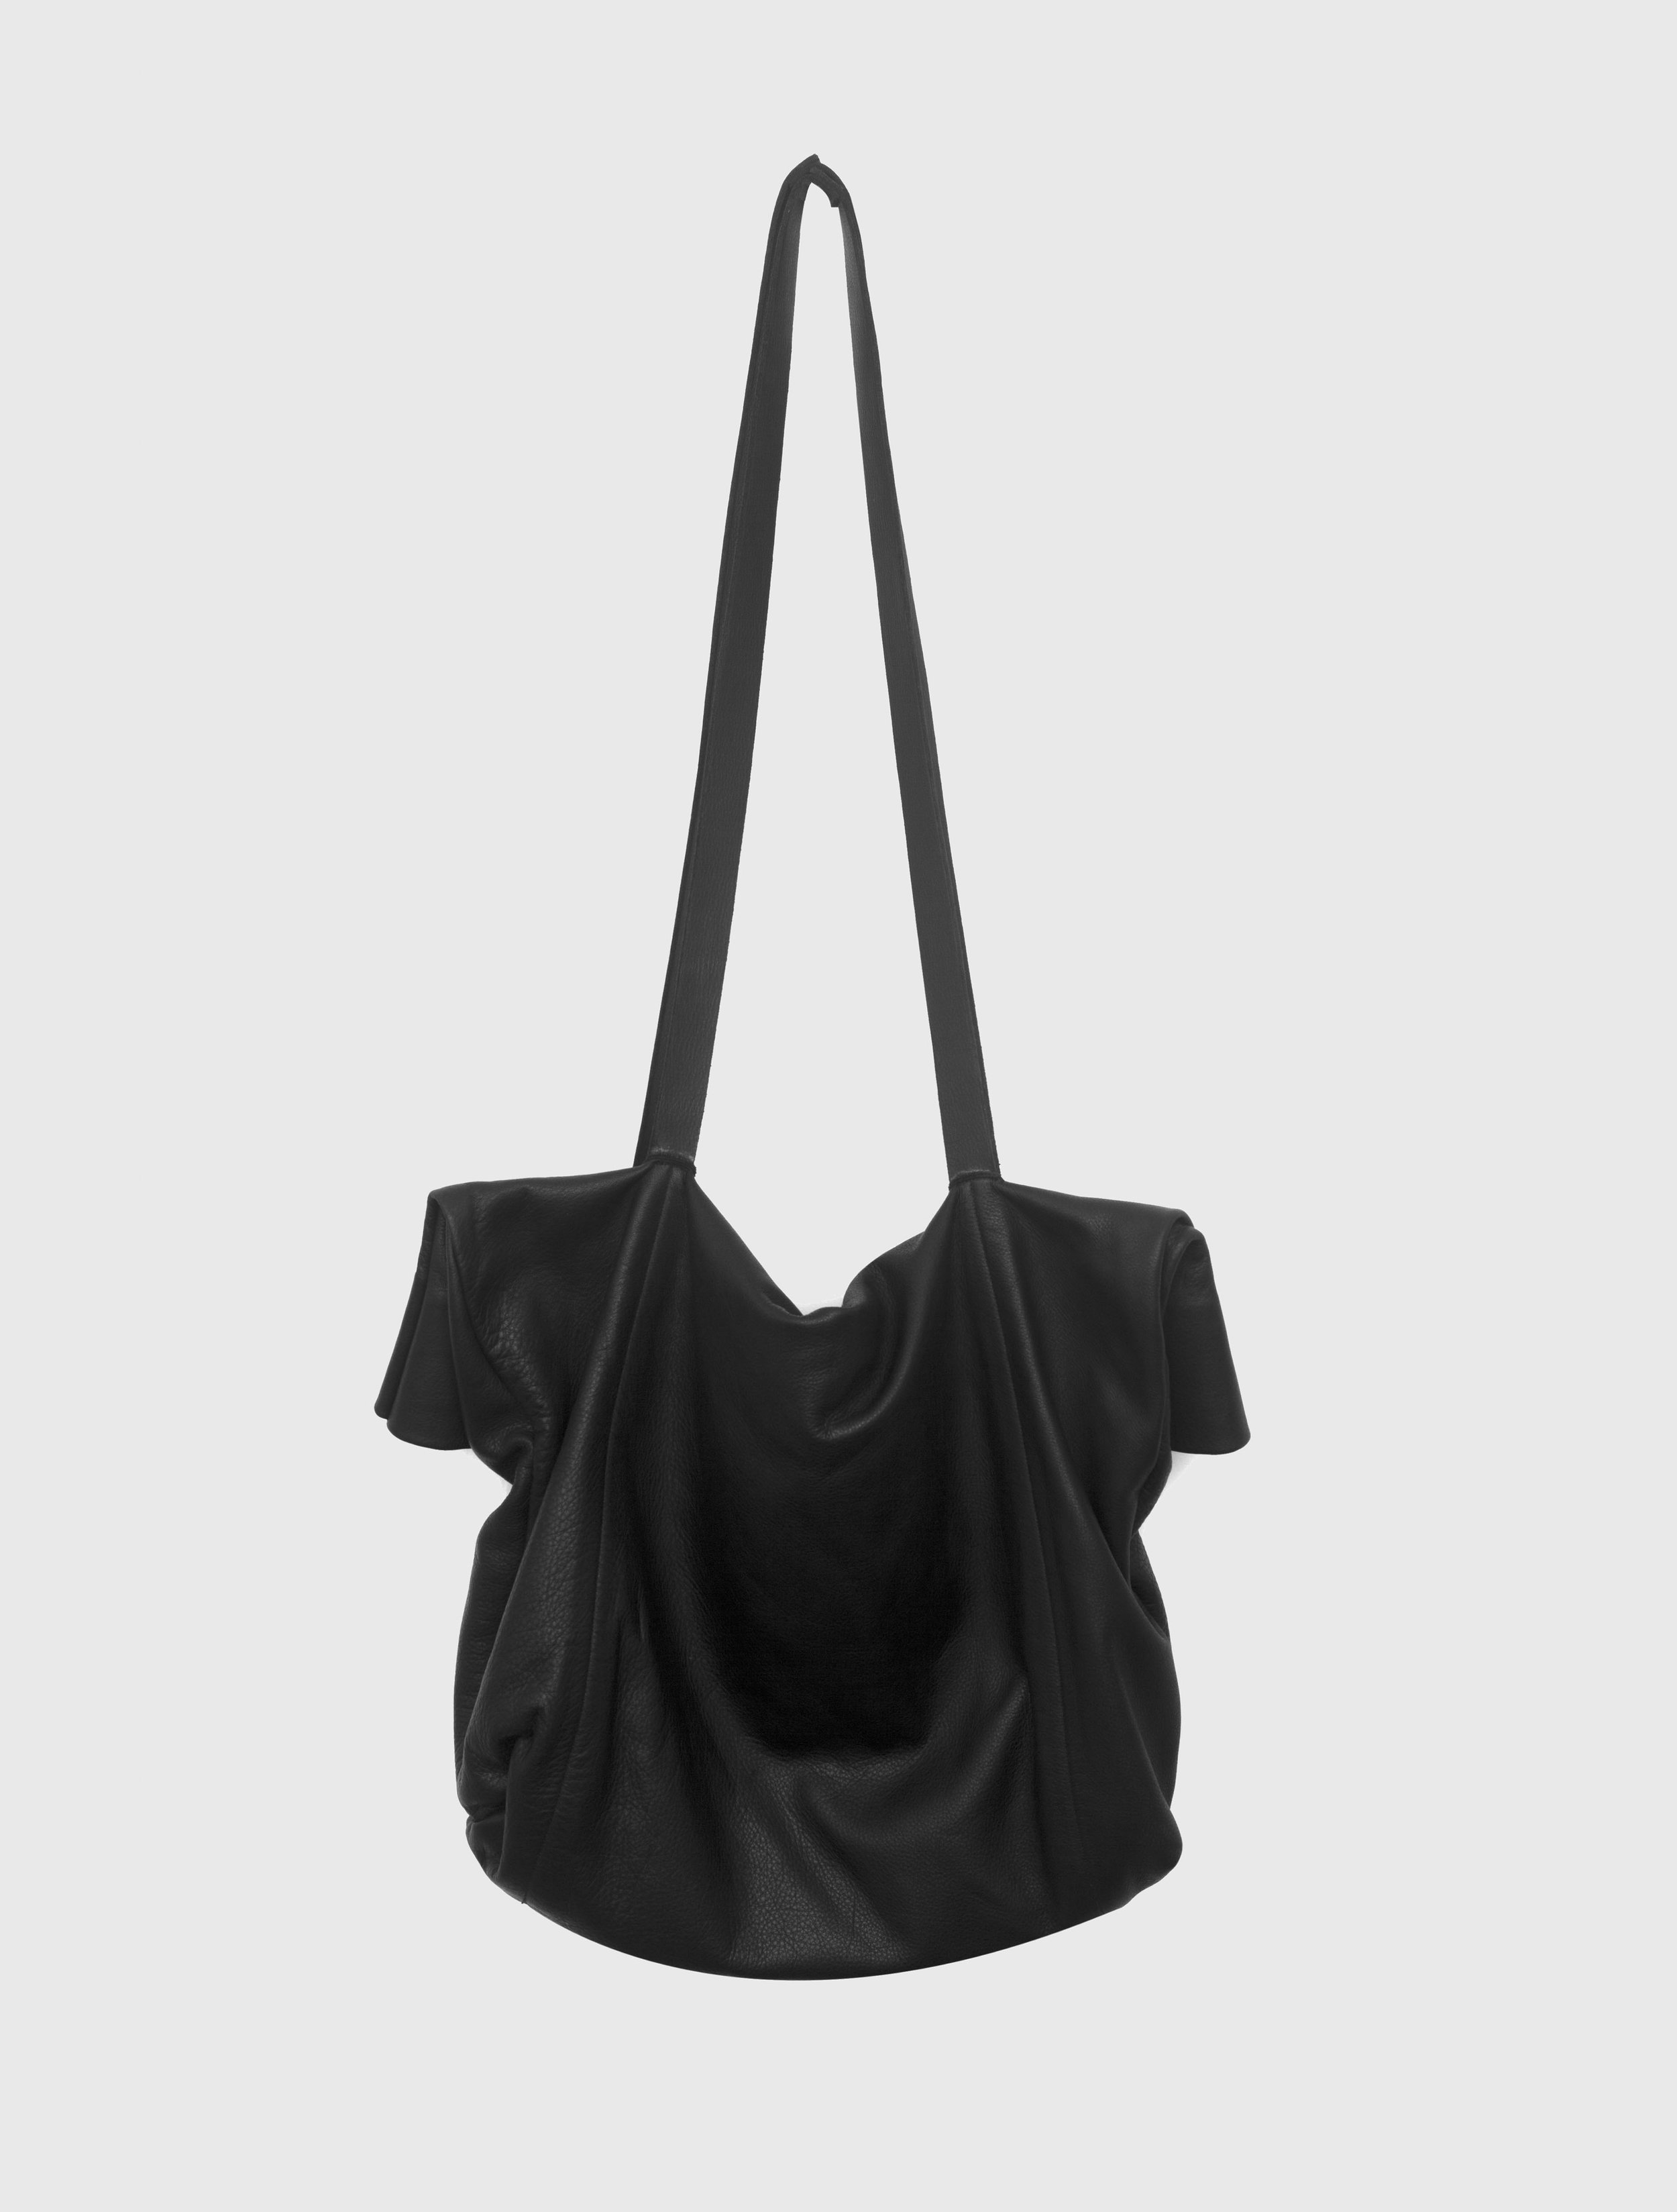 2014 DRAPED FOLDOVER BAG_0001_Layer 2.jpg